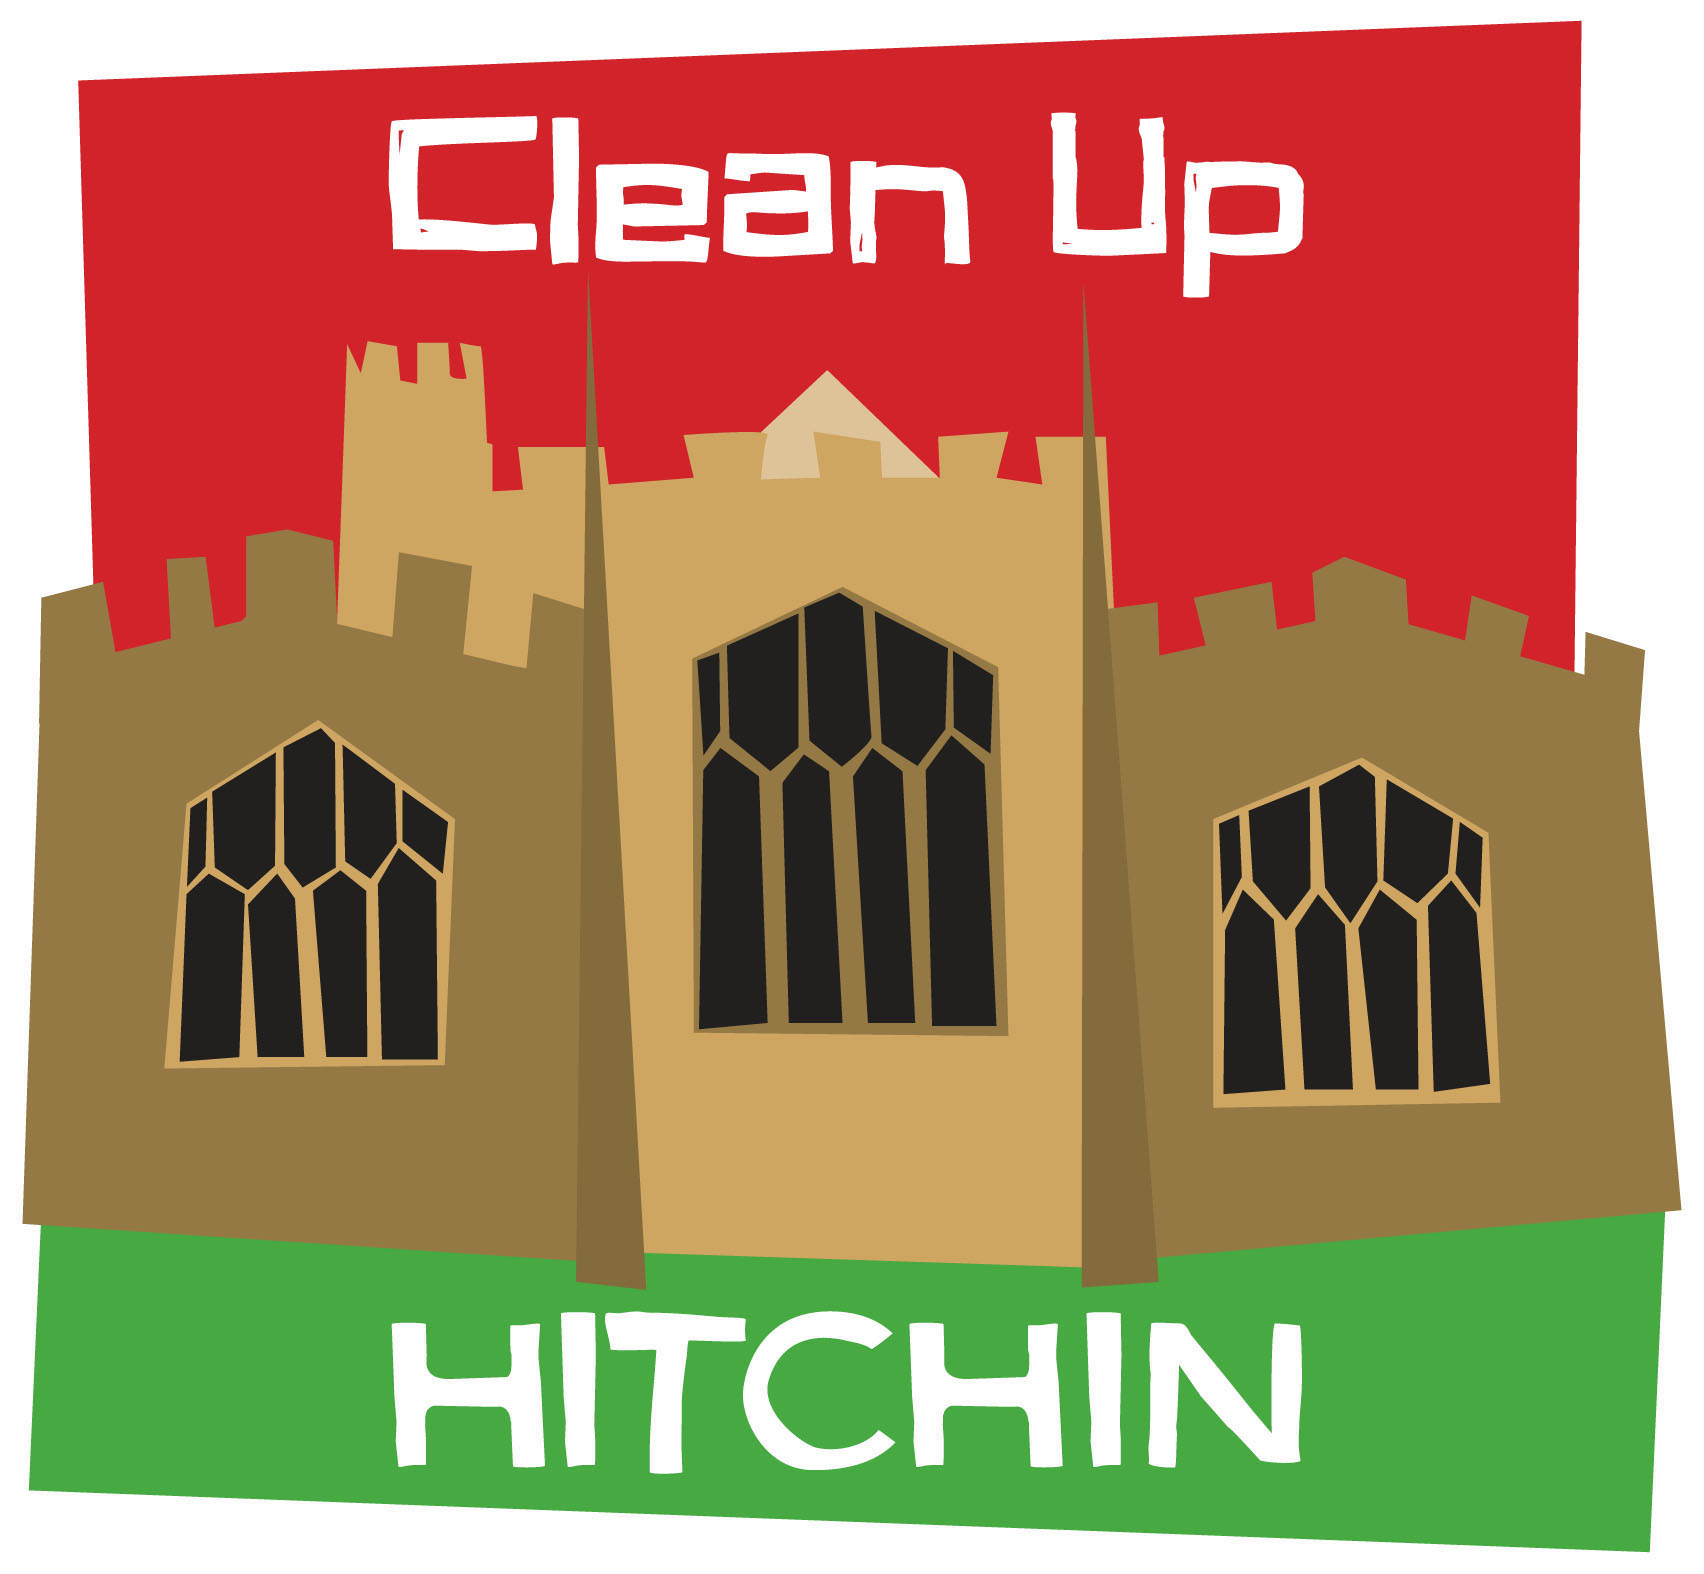 Clean Up Hitchin